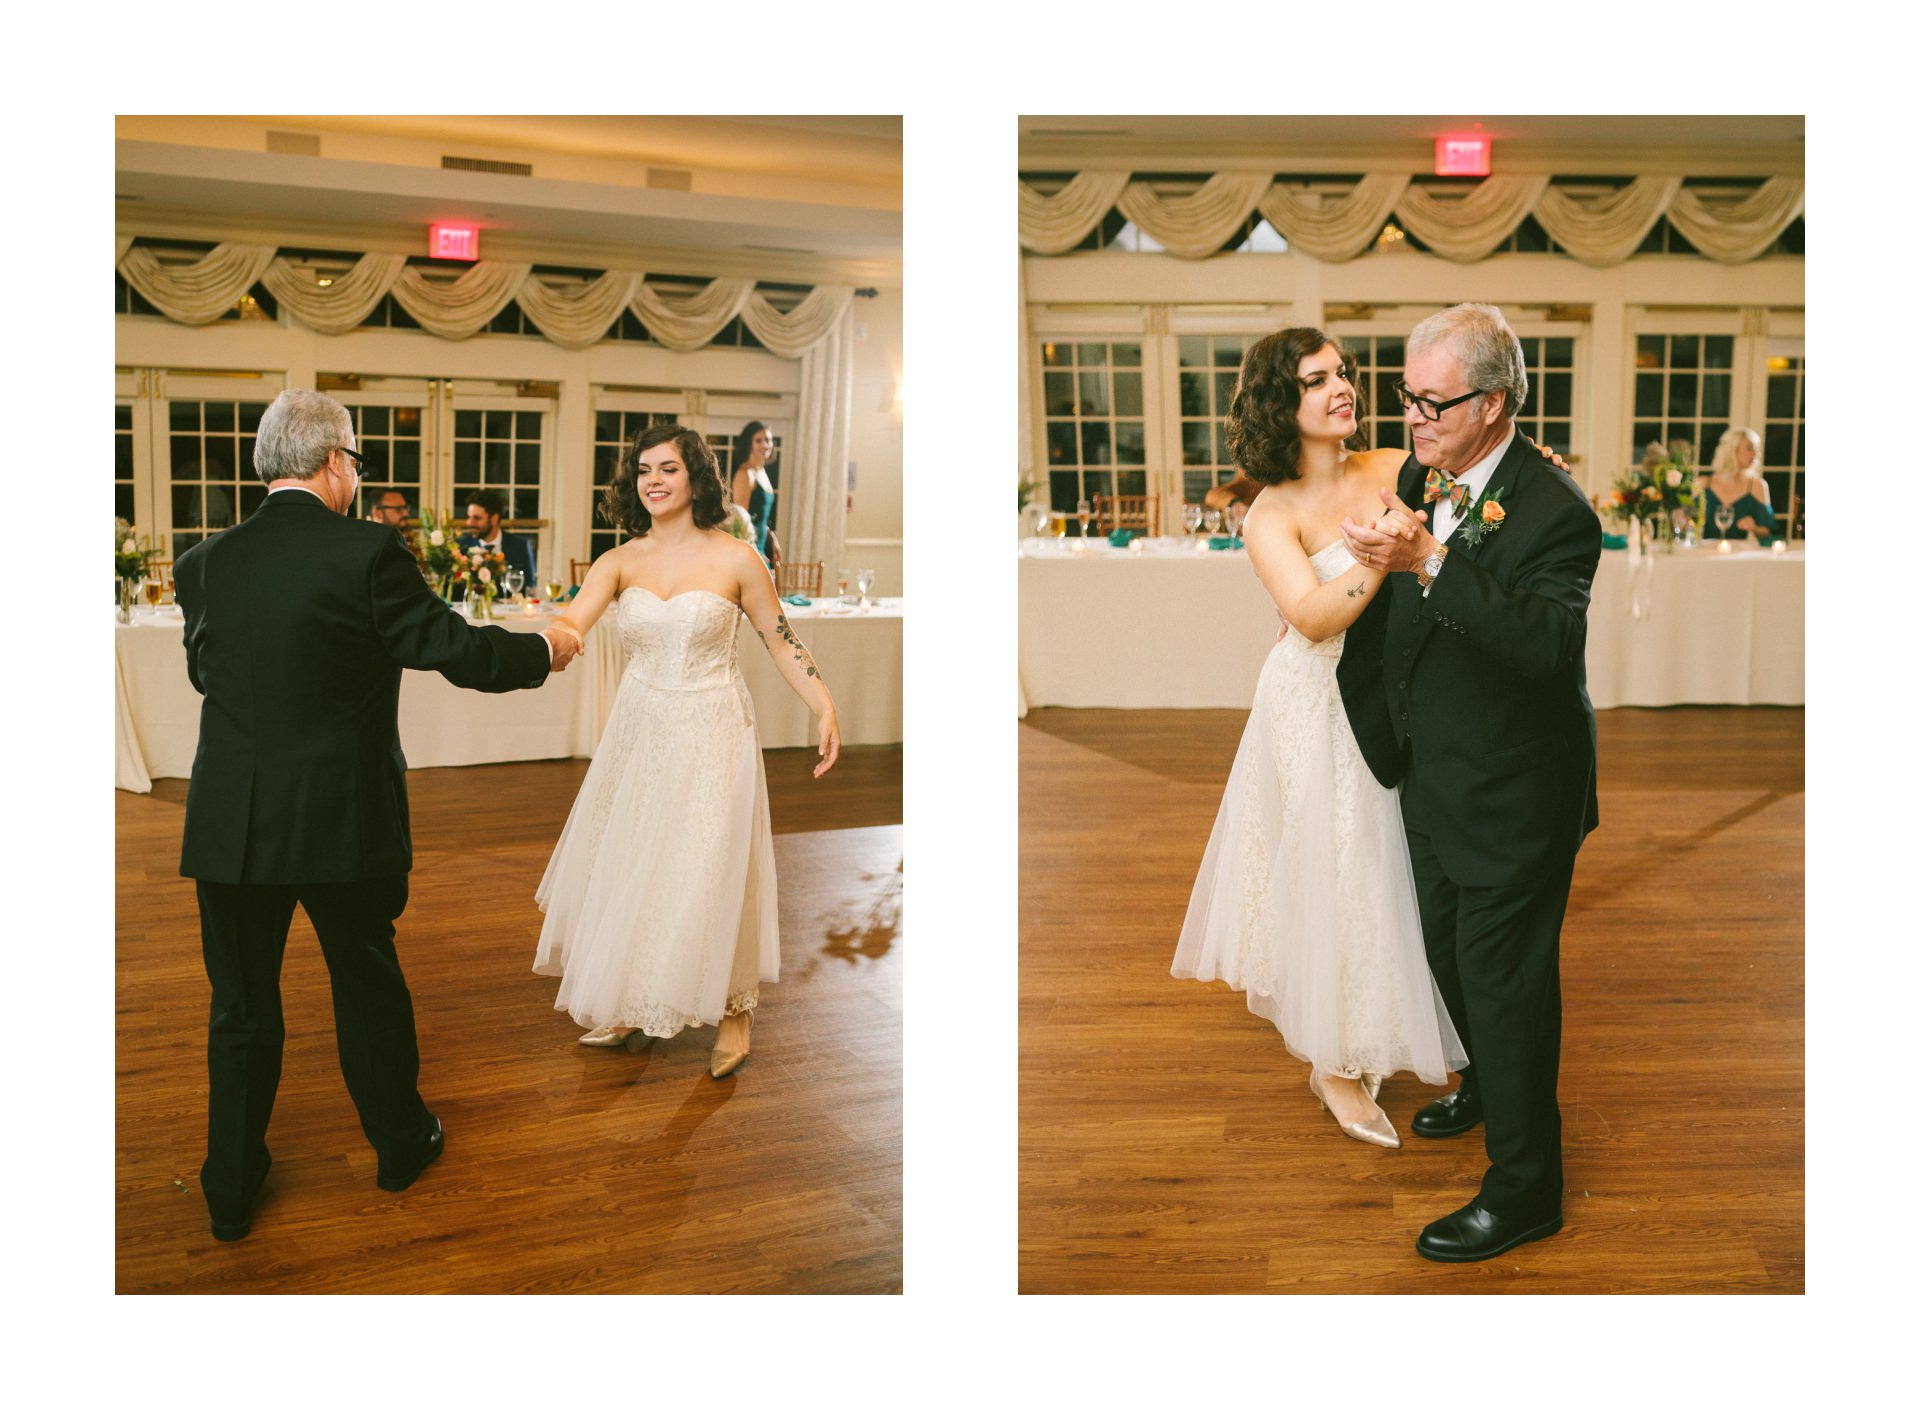 Wedding at the Glidden House in Cleveland 2 36.jpg